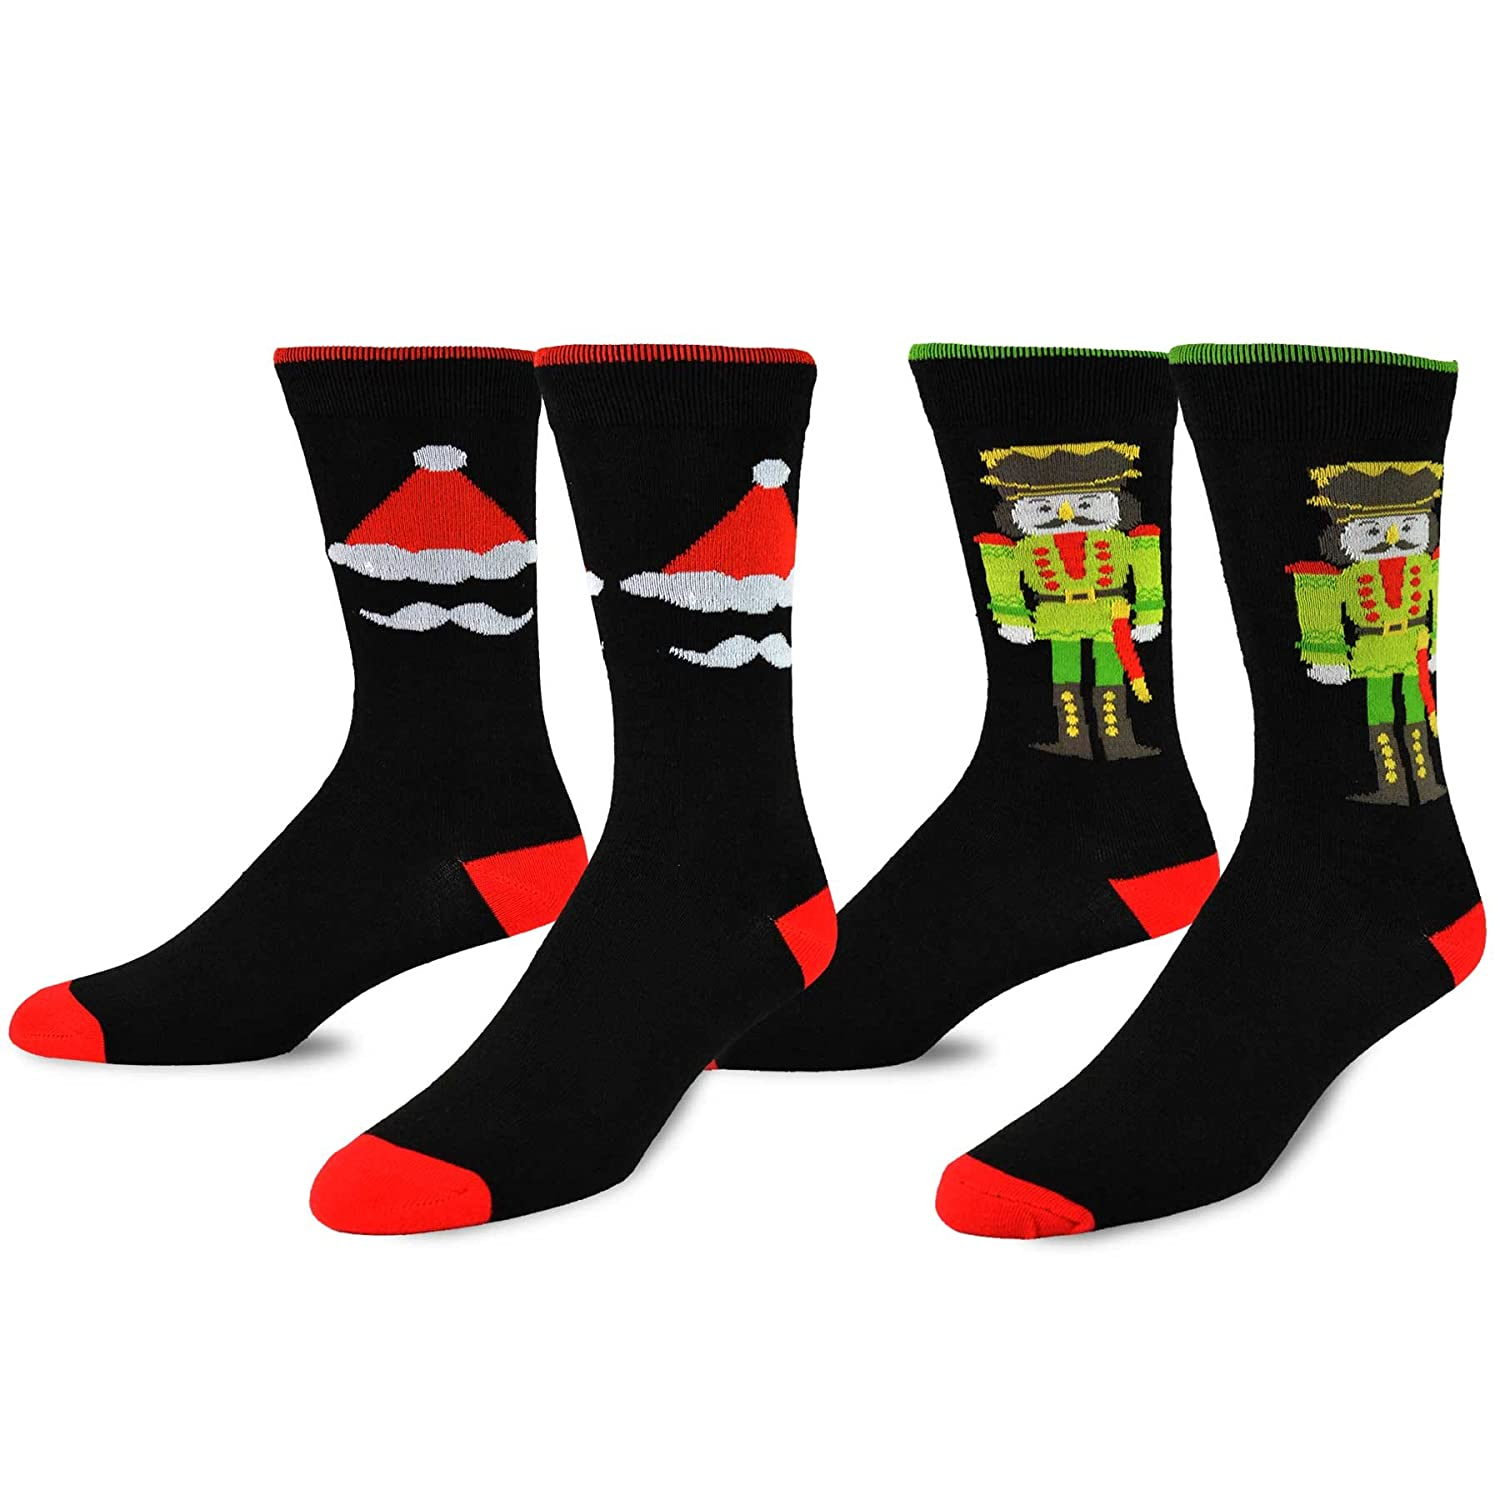 TeeHee Christmas and Holiday Fun Crew Socks for Men 2-Pack Soxnet Inc S/50819-2P07